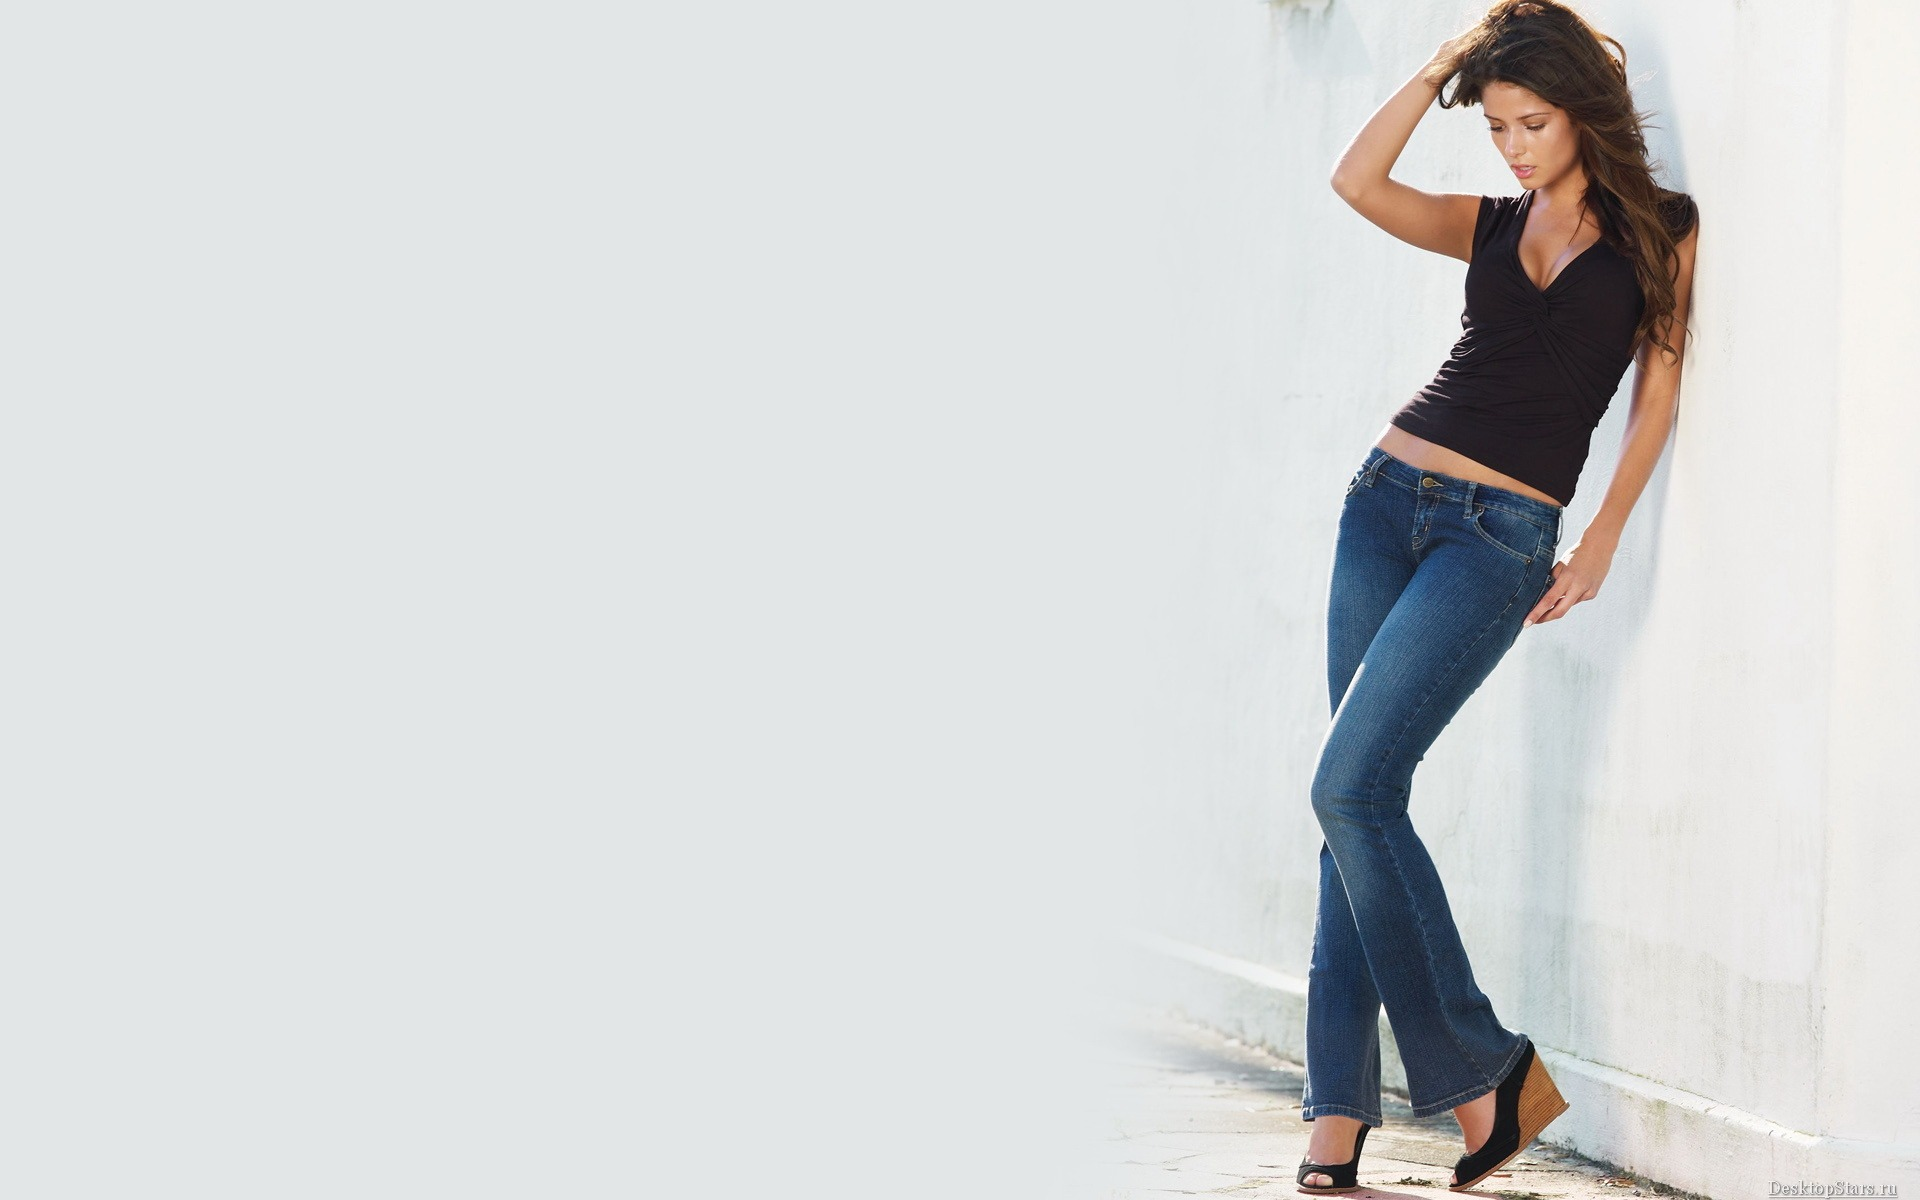 Carla Ossa 031 1920x1200 Wallpaper Download